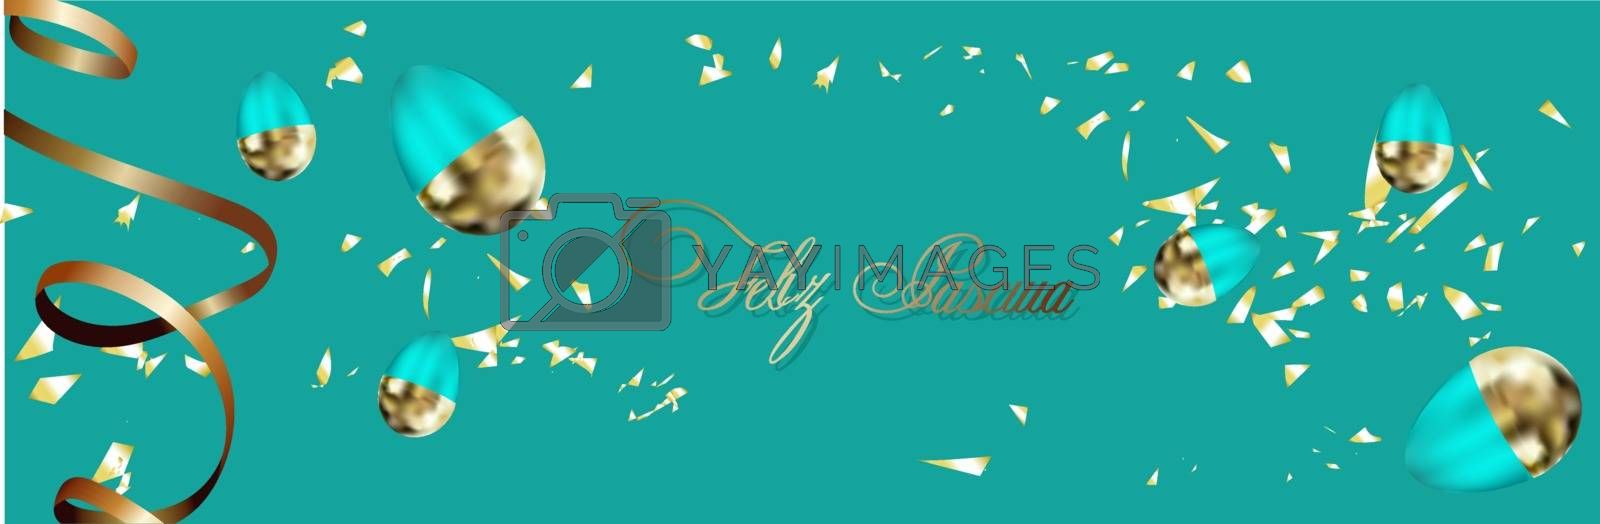 Easter background with place for text. Banner or poster for Easter. Blue. Golden eggs. Spring Break. Promotions and sales. Website header..